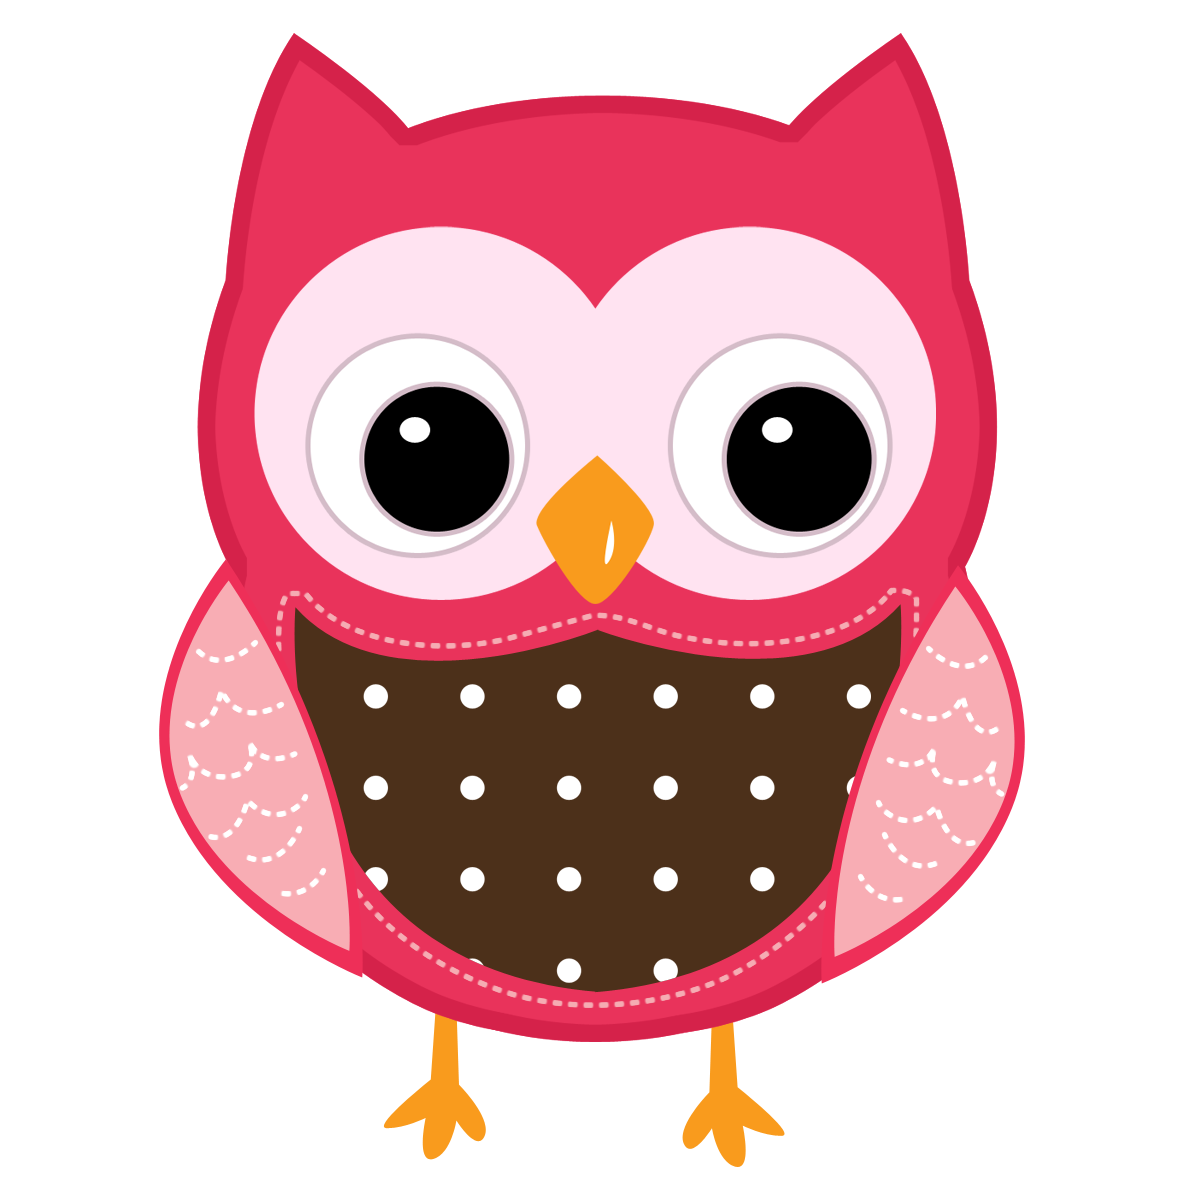 Clipart of owl with apple clipart transparent Cute Cartoon Owls | Teach it With Class: February 2012 | Owl ... clipart transparent